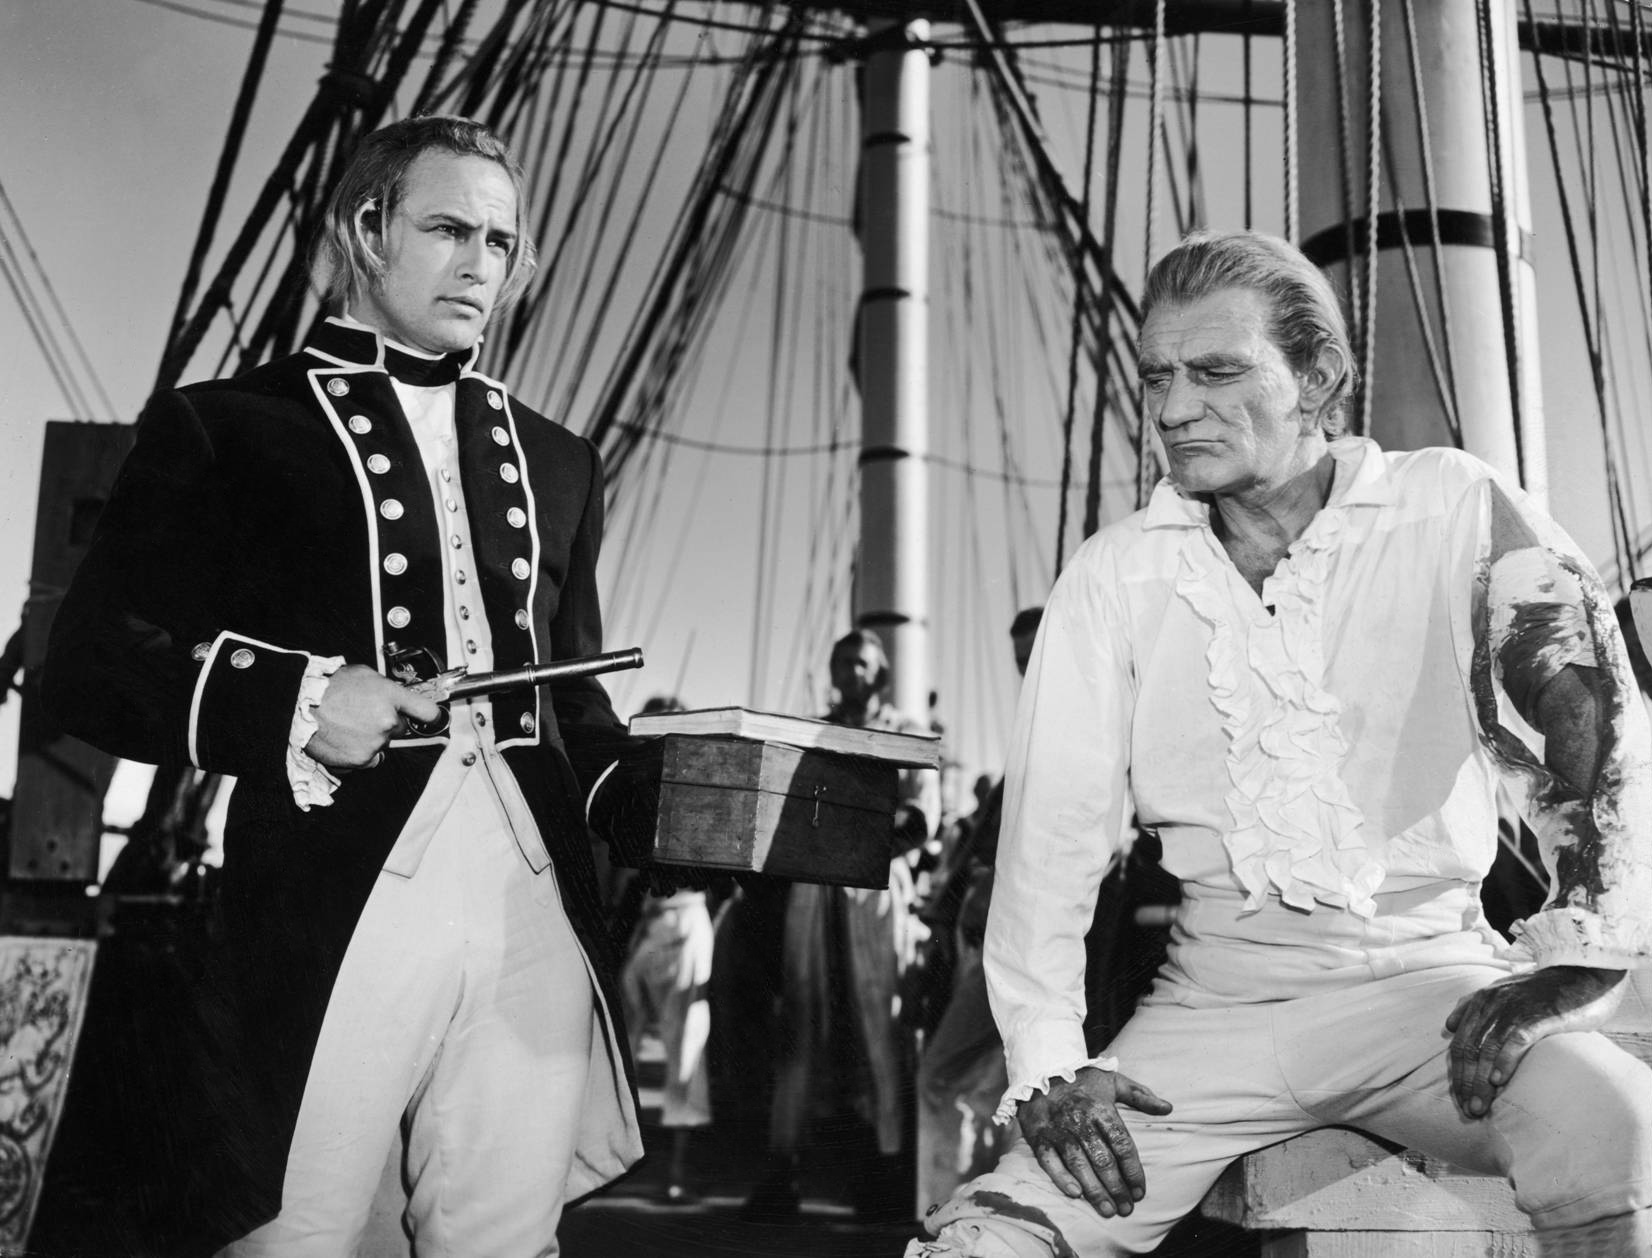 Marlon Brando as Fletcher Christian and Trevor Howard as Captain Bligh, 1962